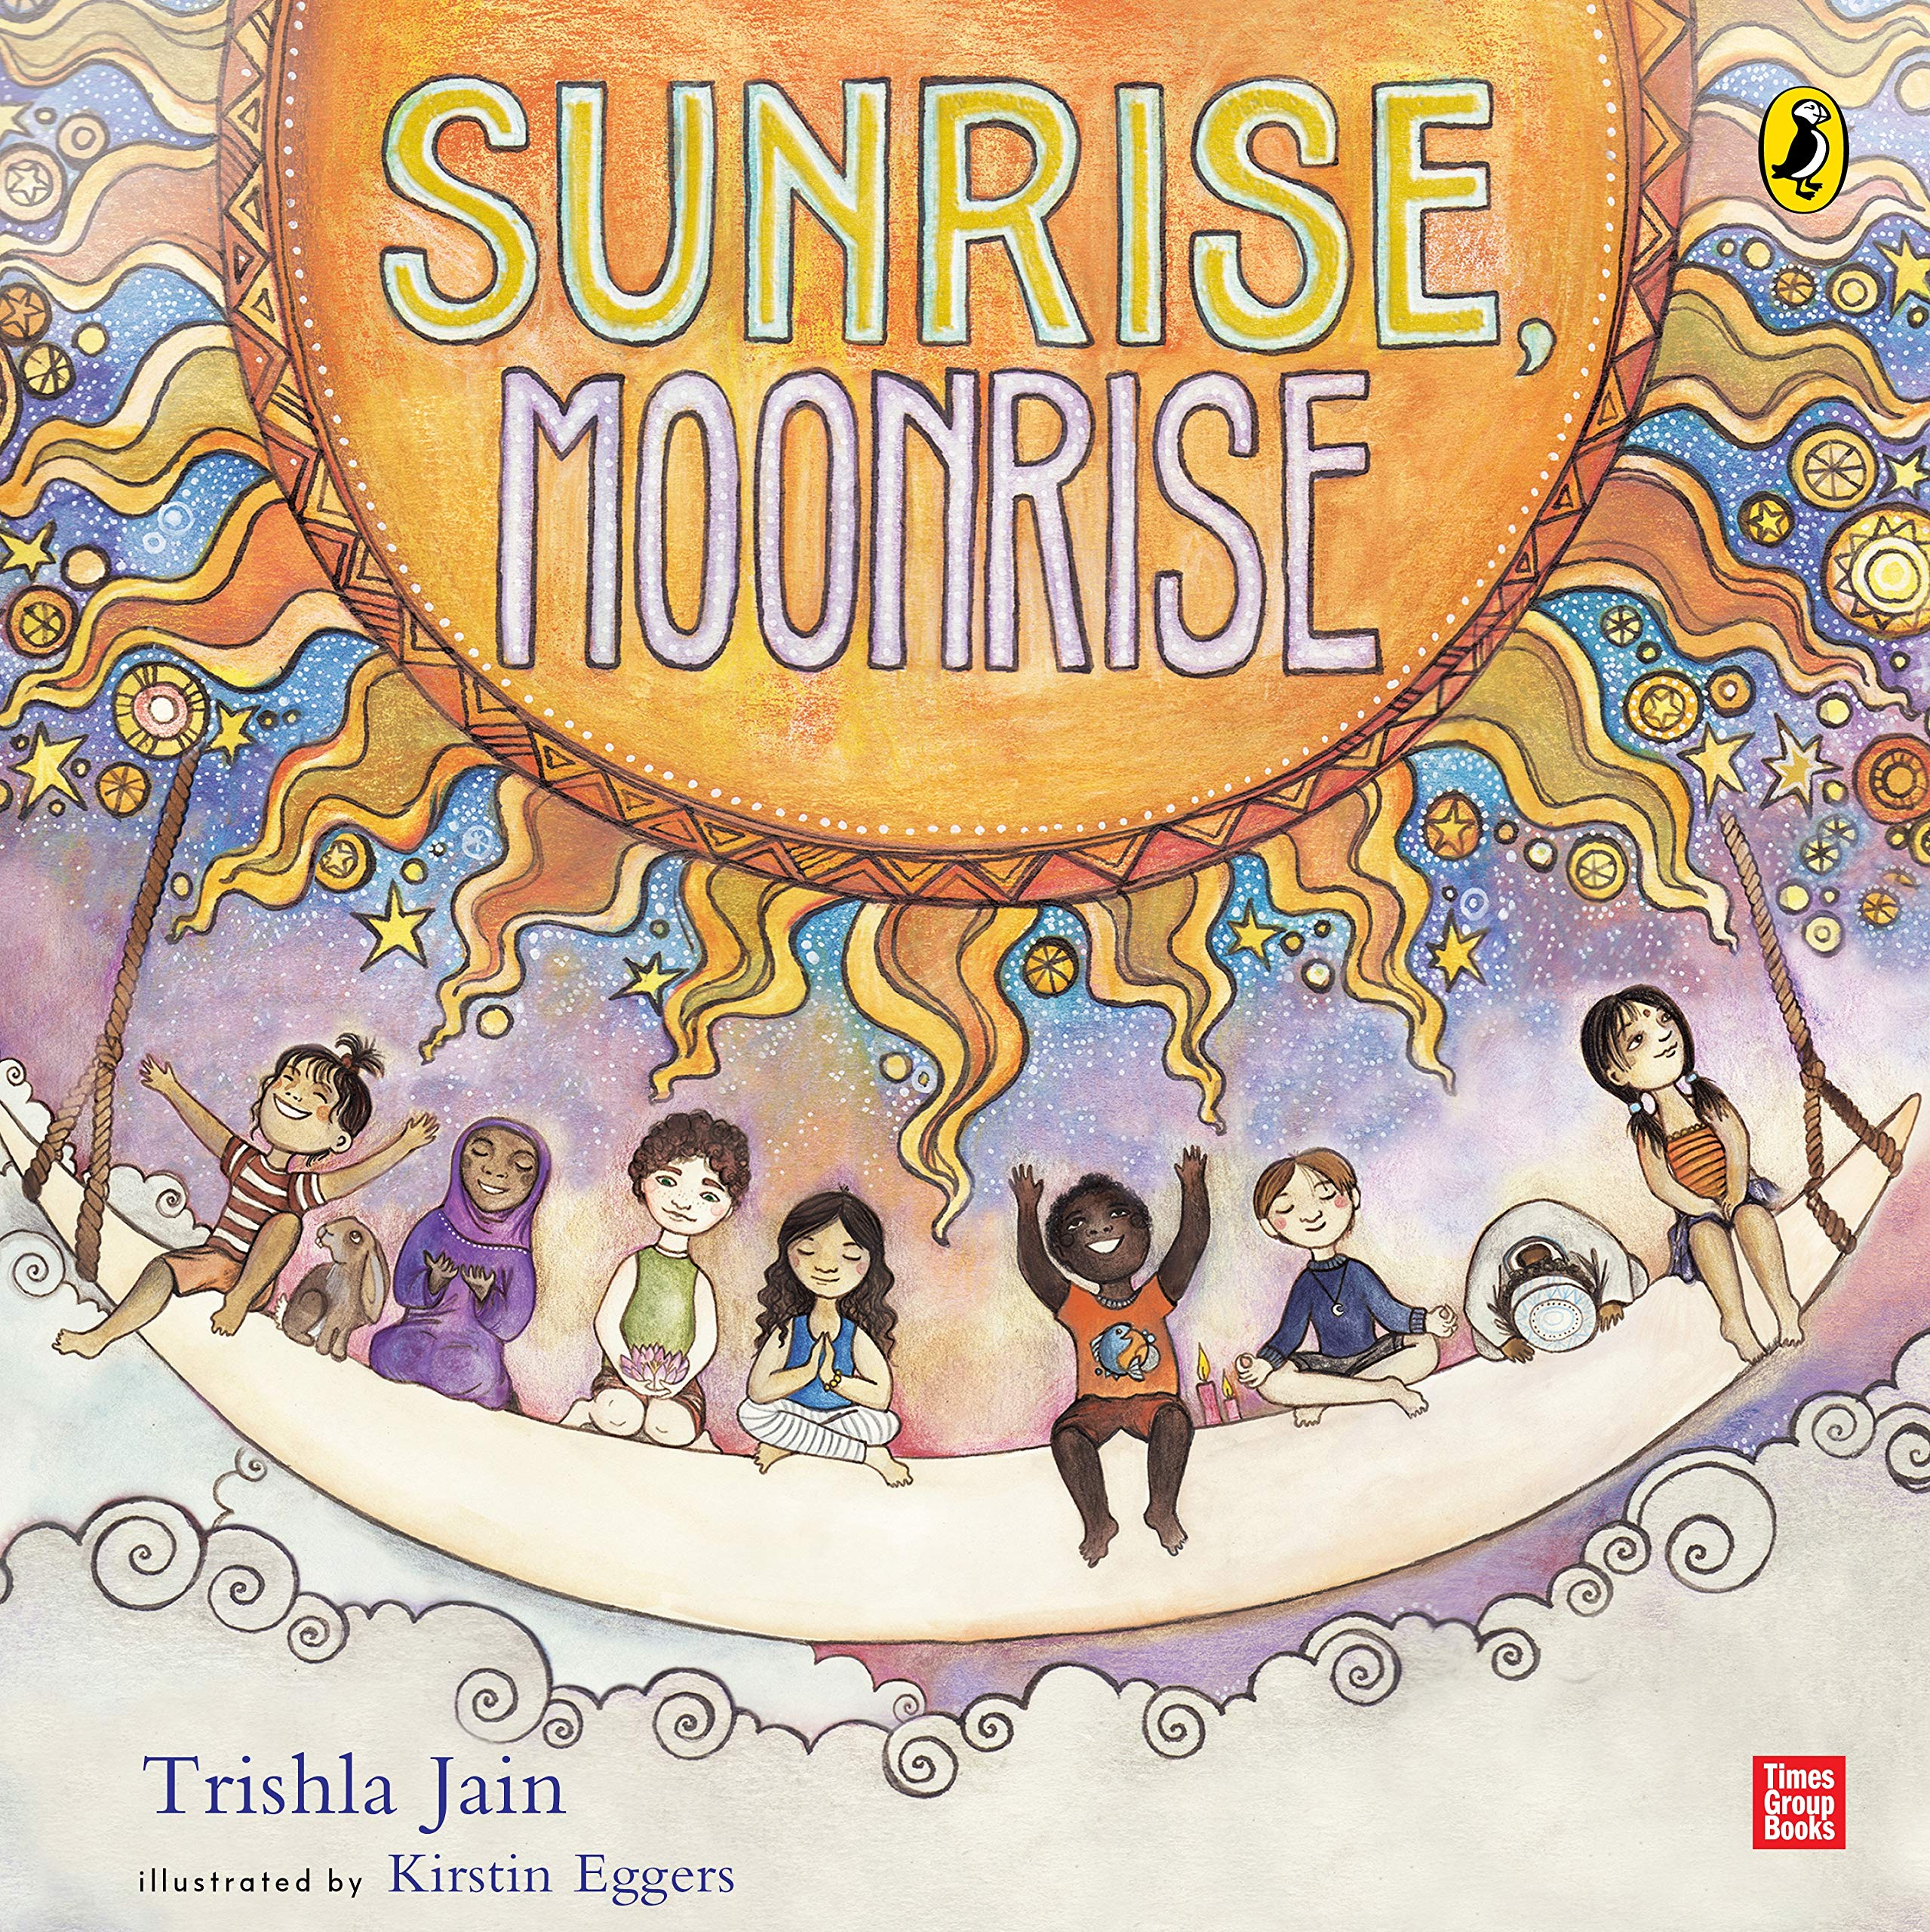 Buy Sunrise, Moonrise Book Online at Low Prices in India